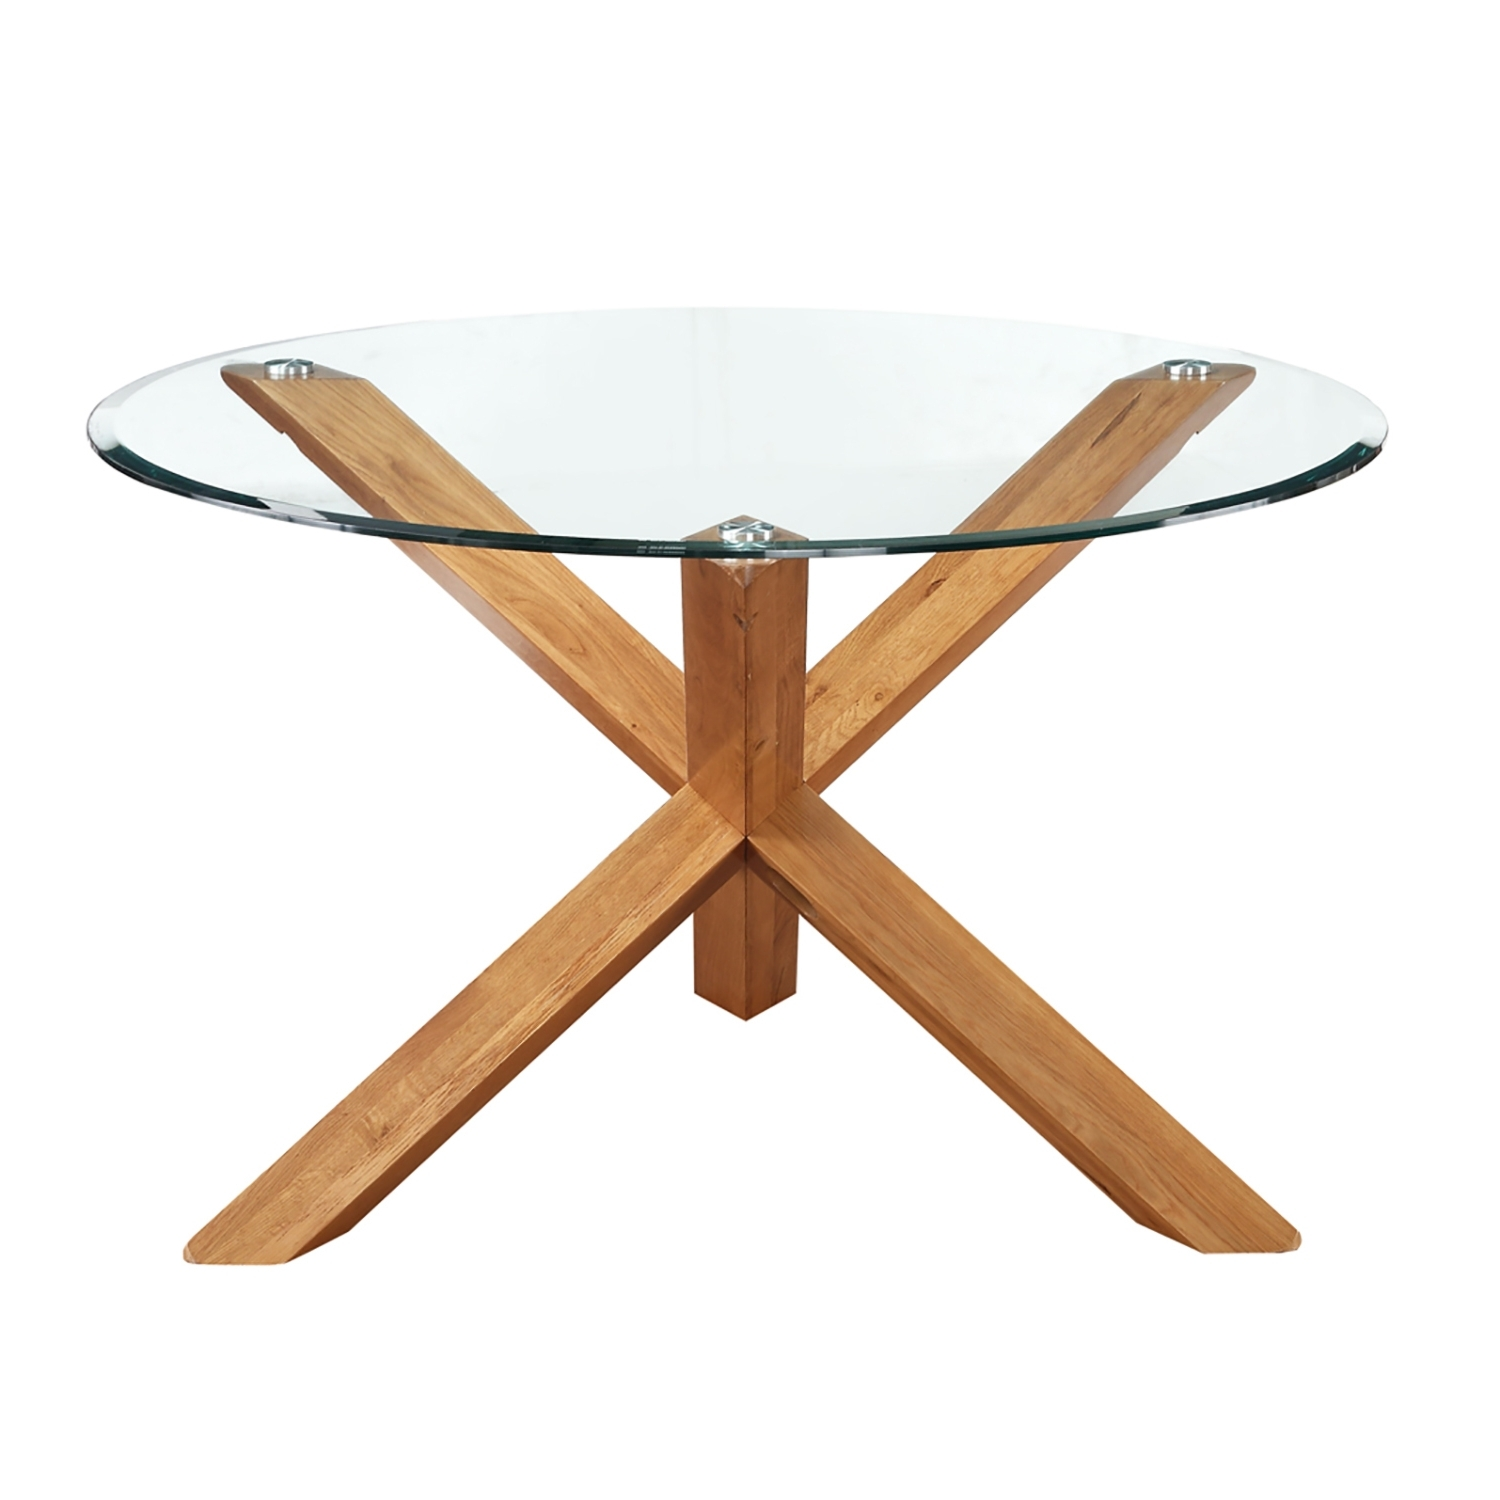 Preferred Round Glass Dining Tables With Oak Legs With Regard To Miso Solid Oak And Glass Dining Table (View 14 of 25)